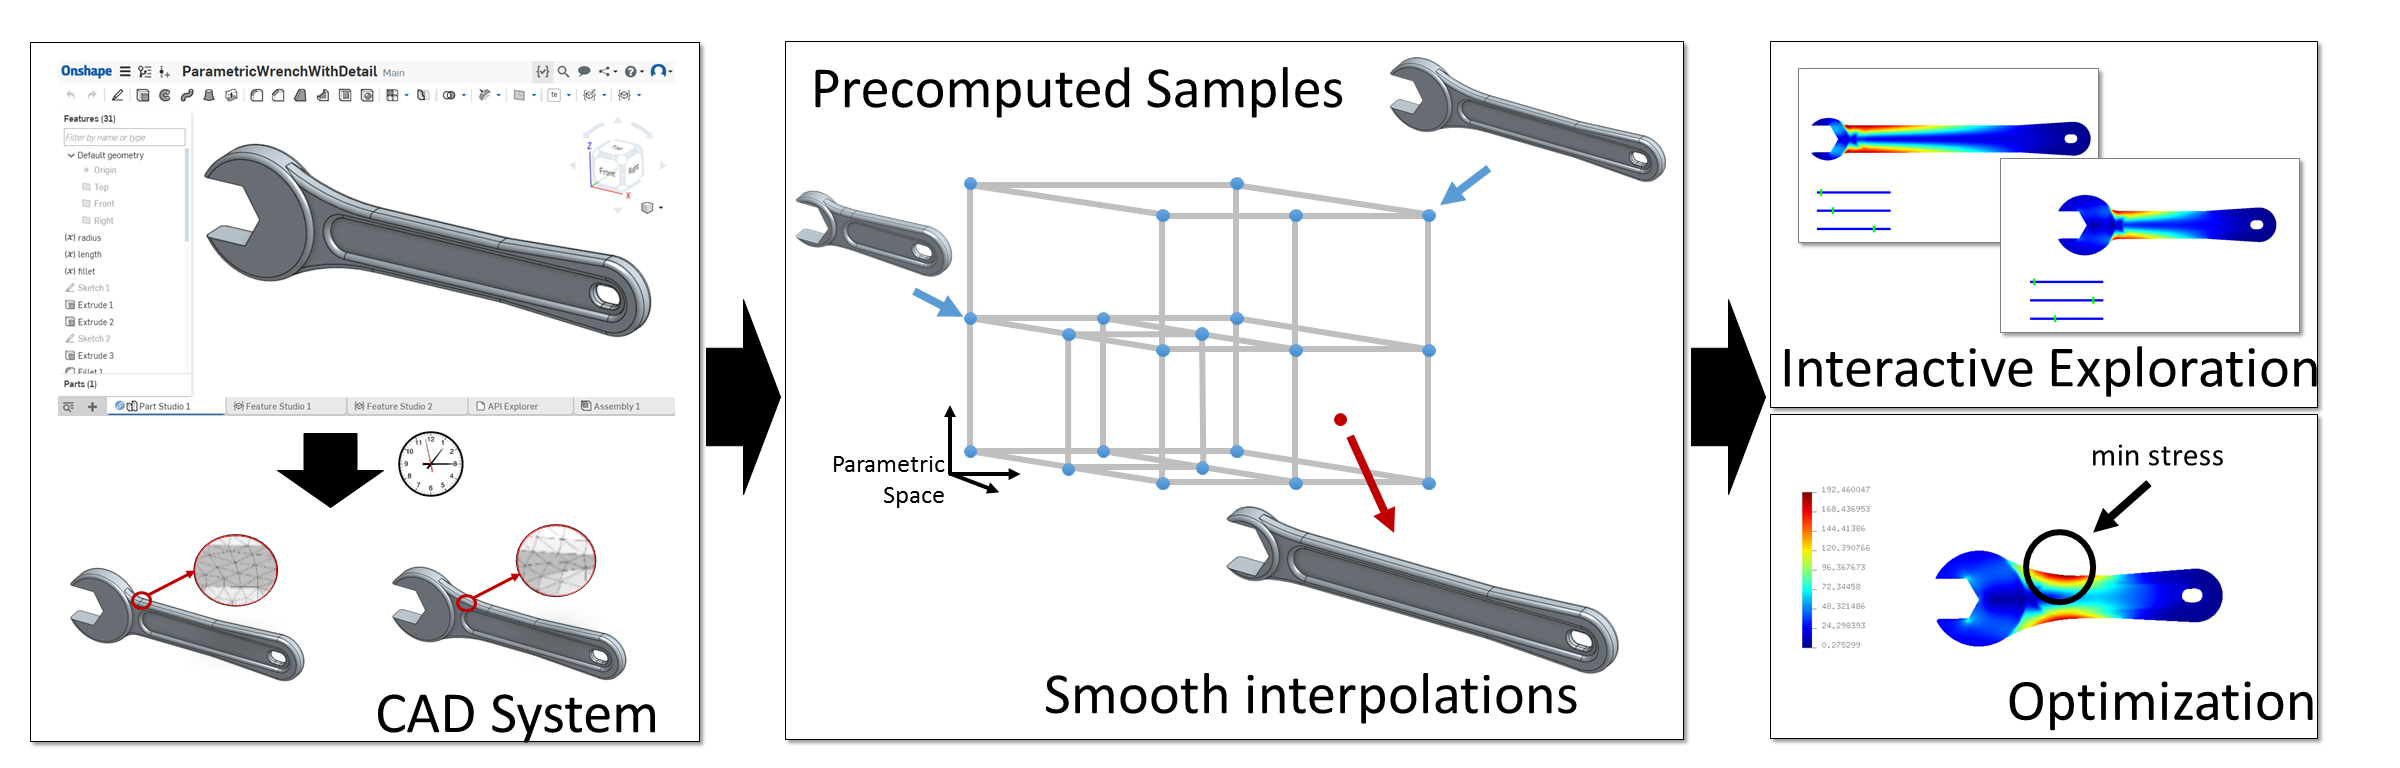 interactive design space exploration and optimization for cad models